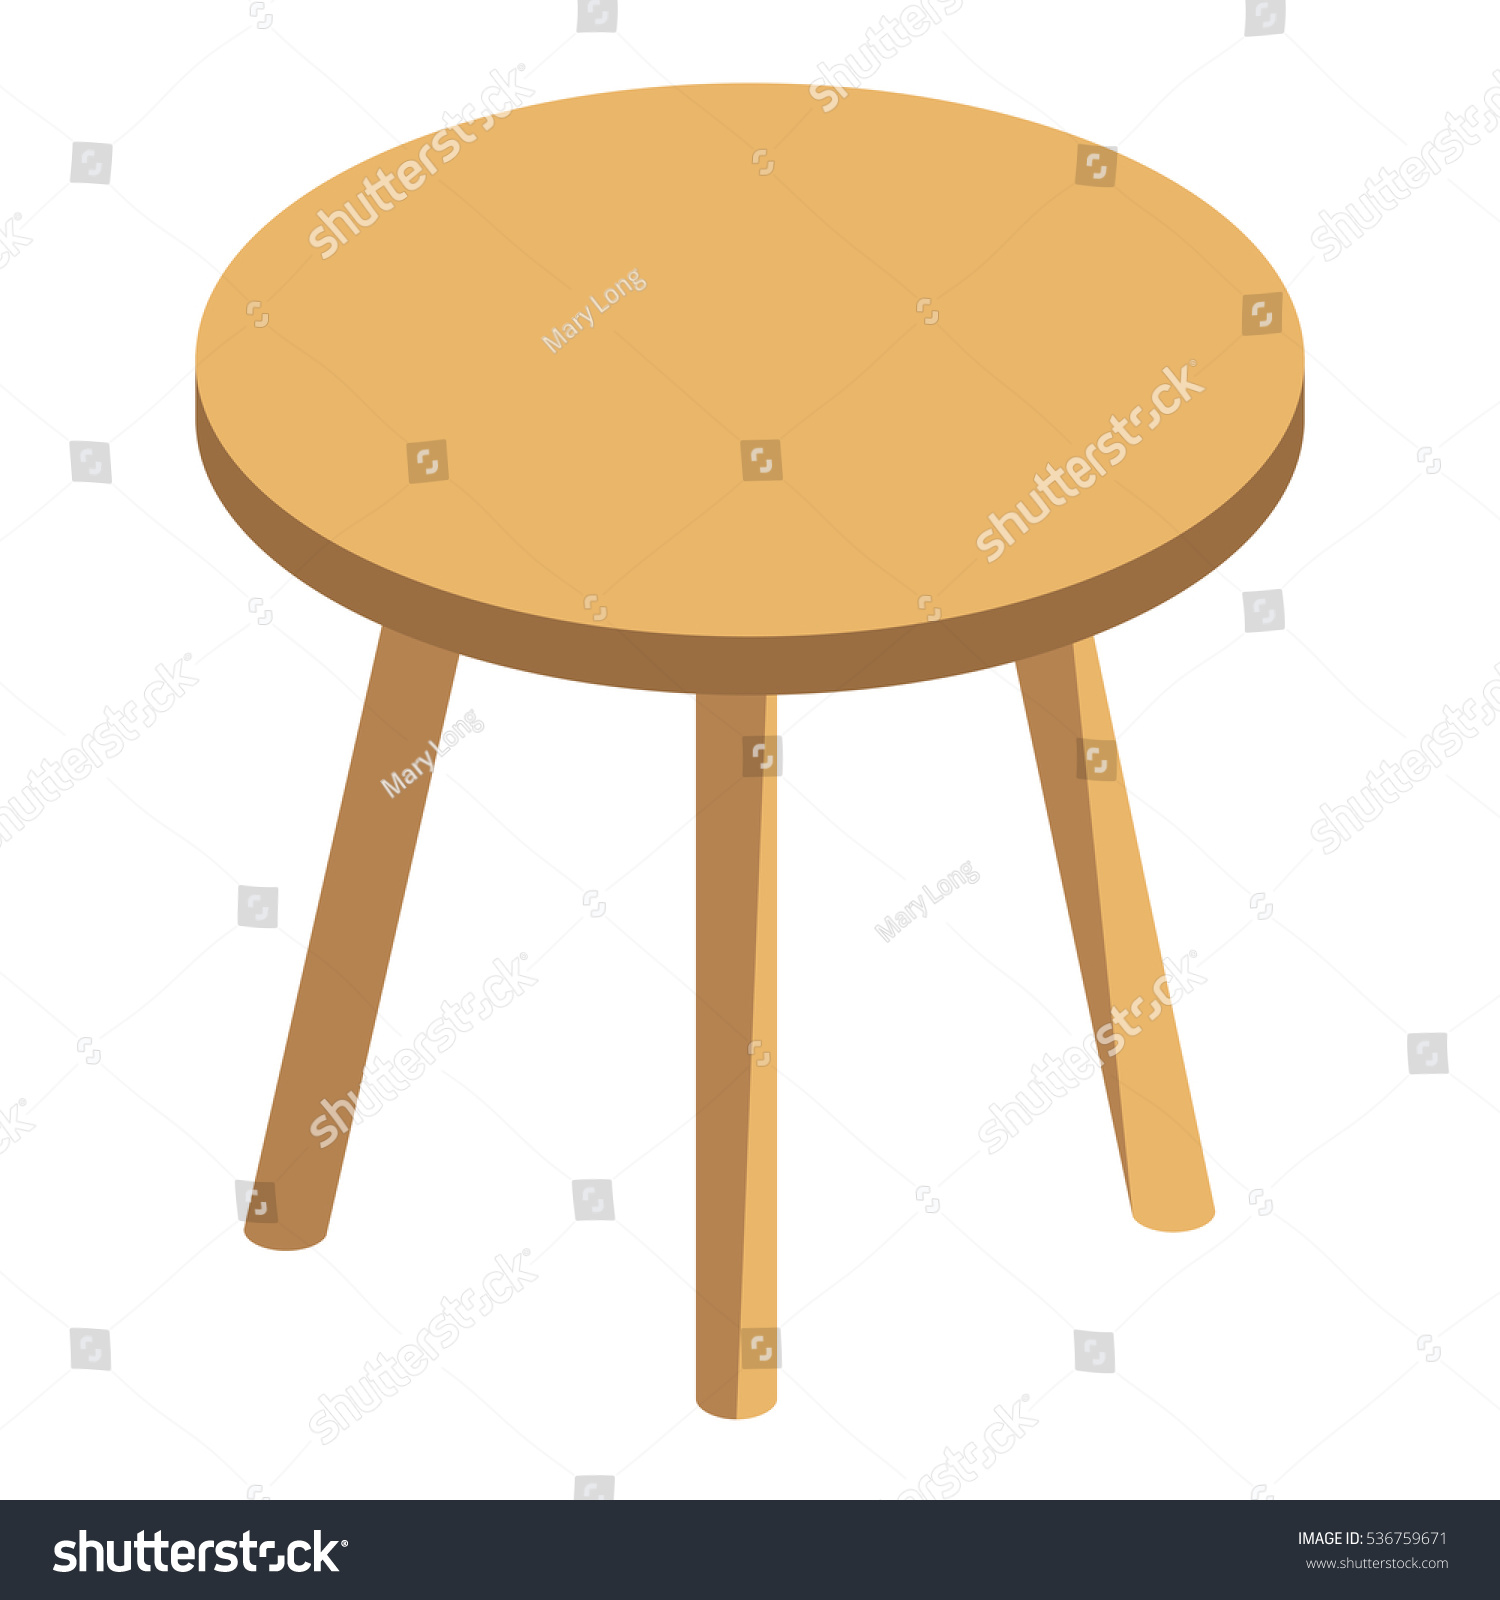 Isometric Vector Round Coffee Table Small Stock Vector